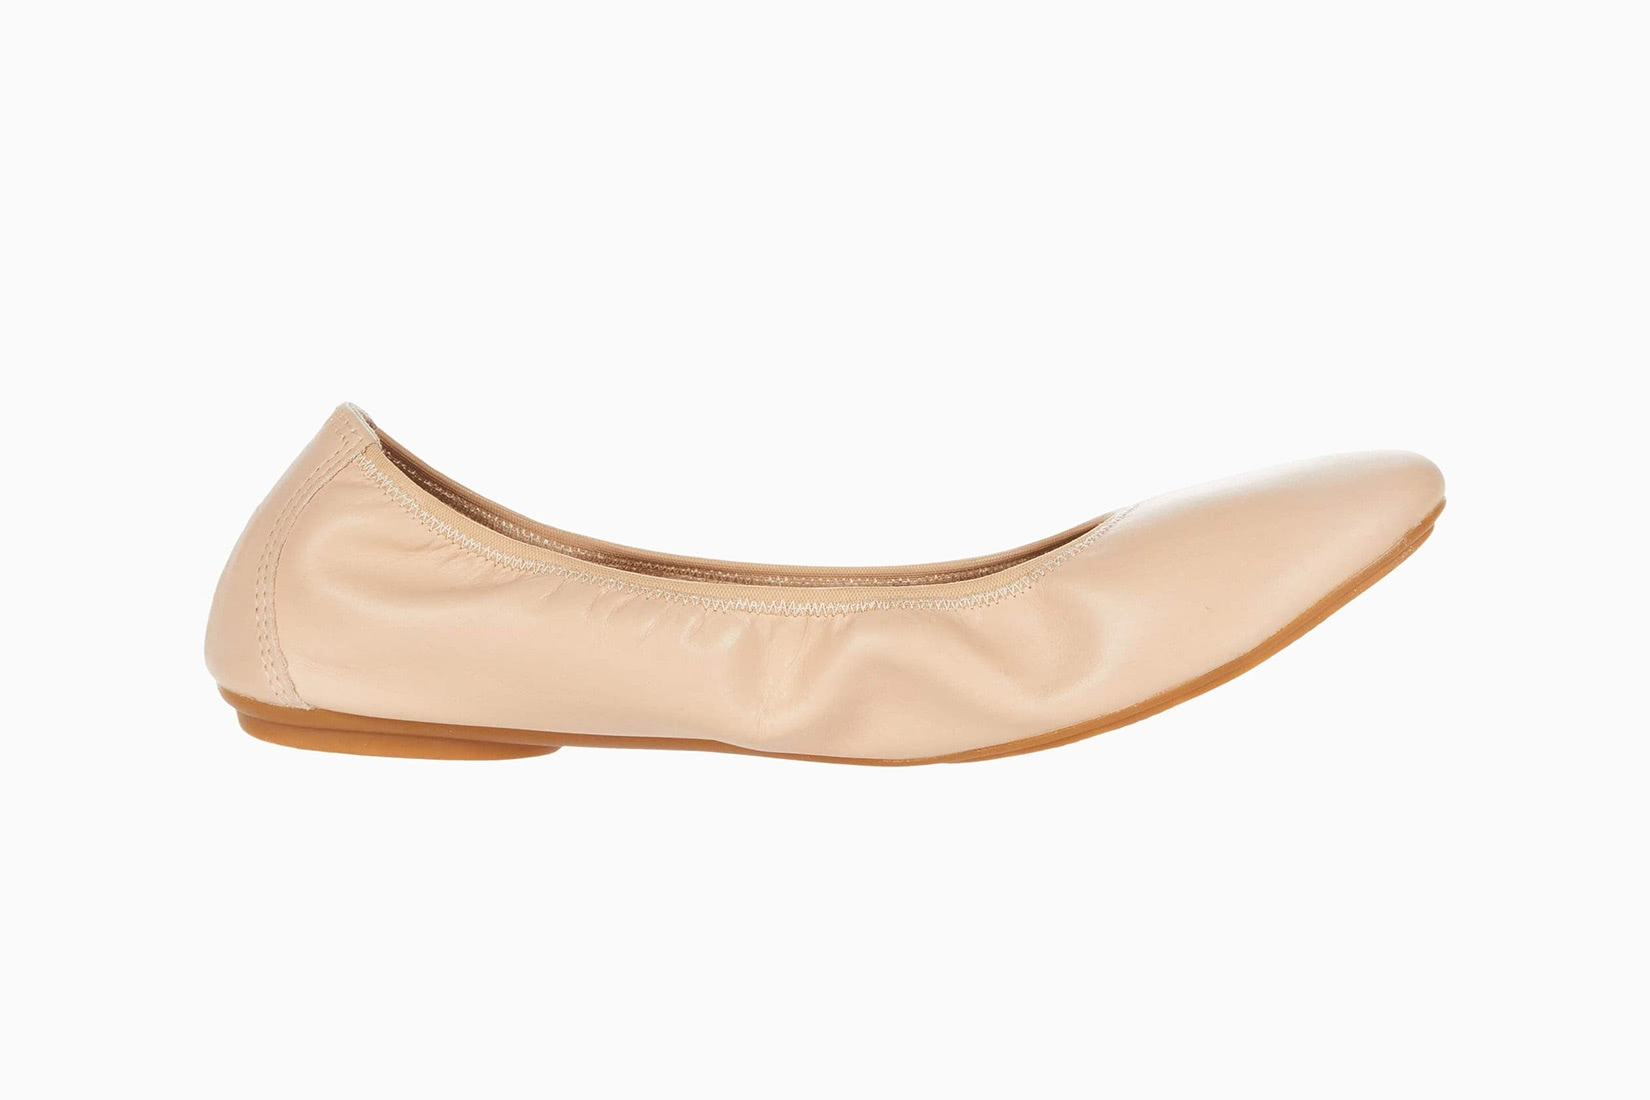 most comfortable flats women value hushpuppies ballet review - Luxe Digital